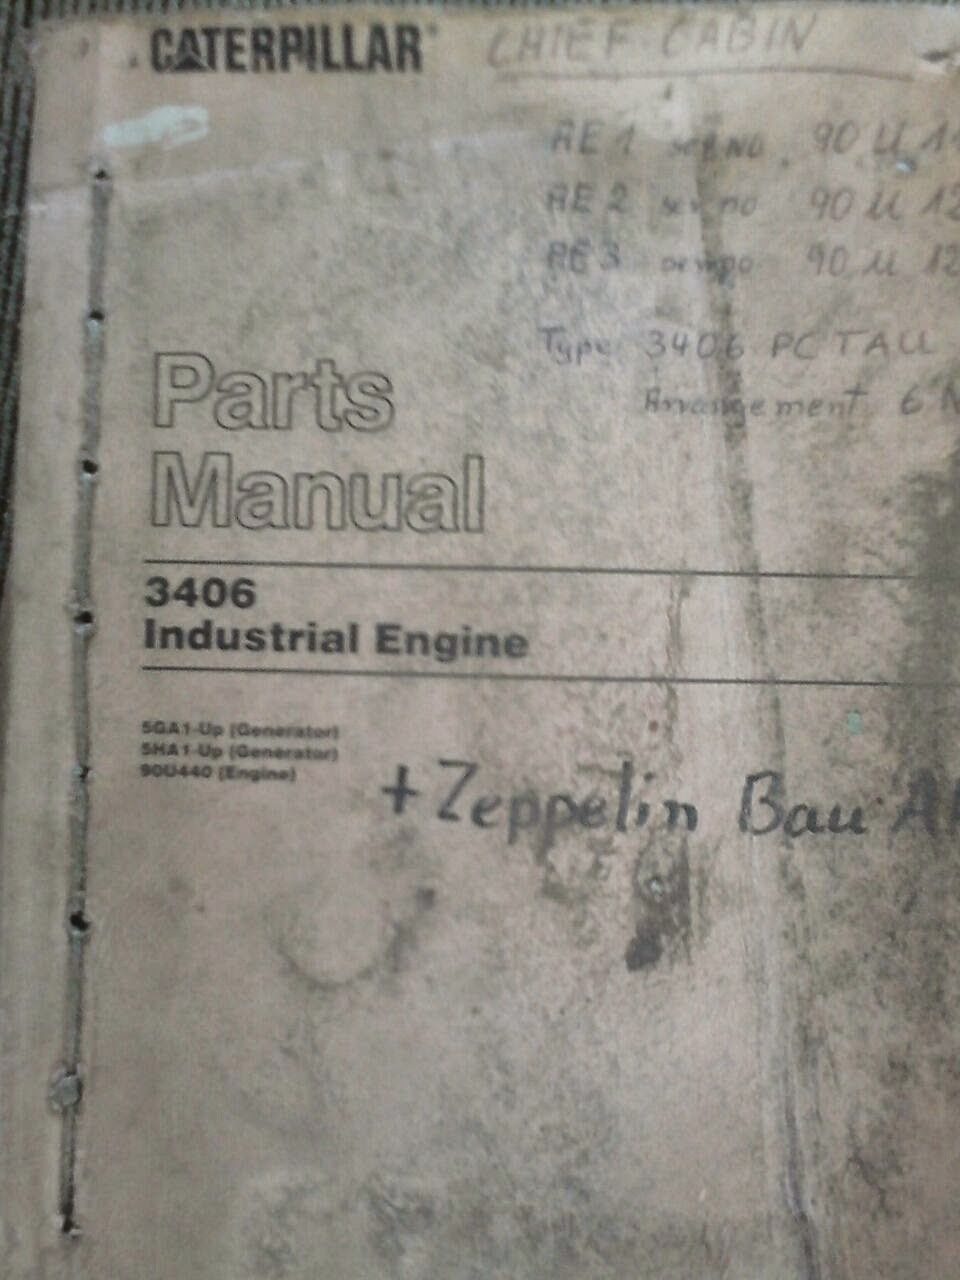 CAT 3406 manual book, service manual book for caterpillar engine